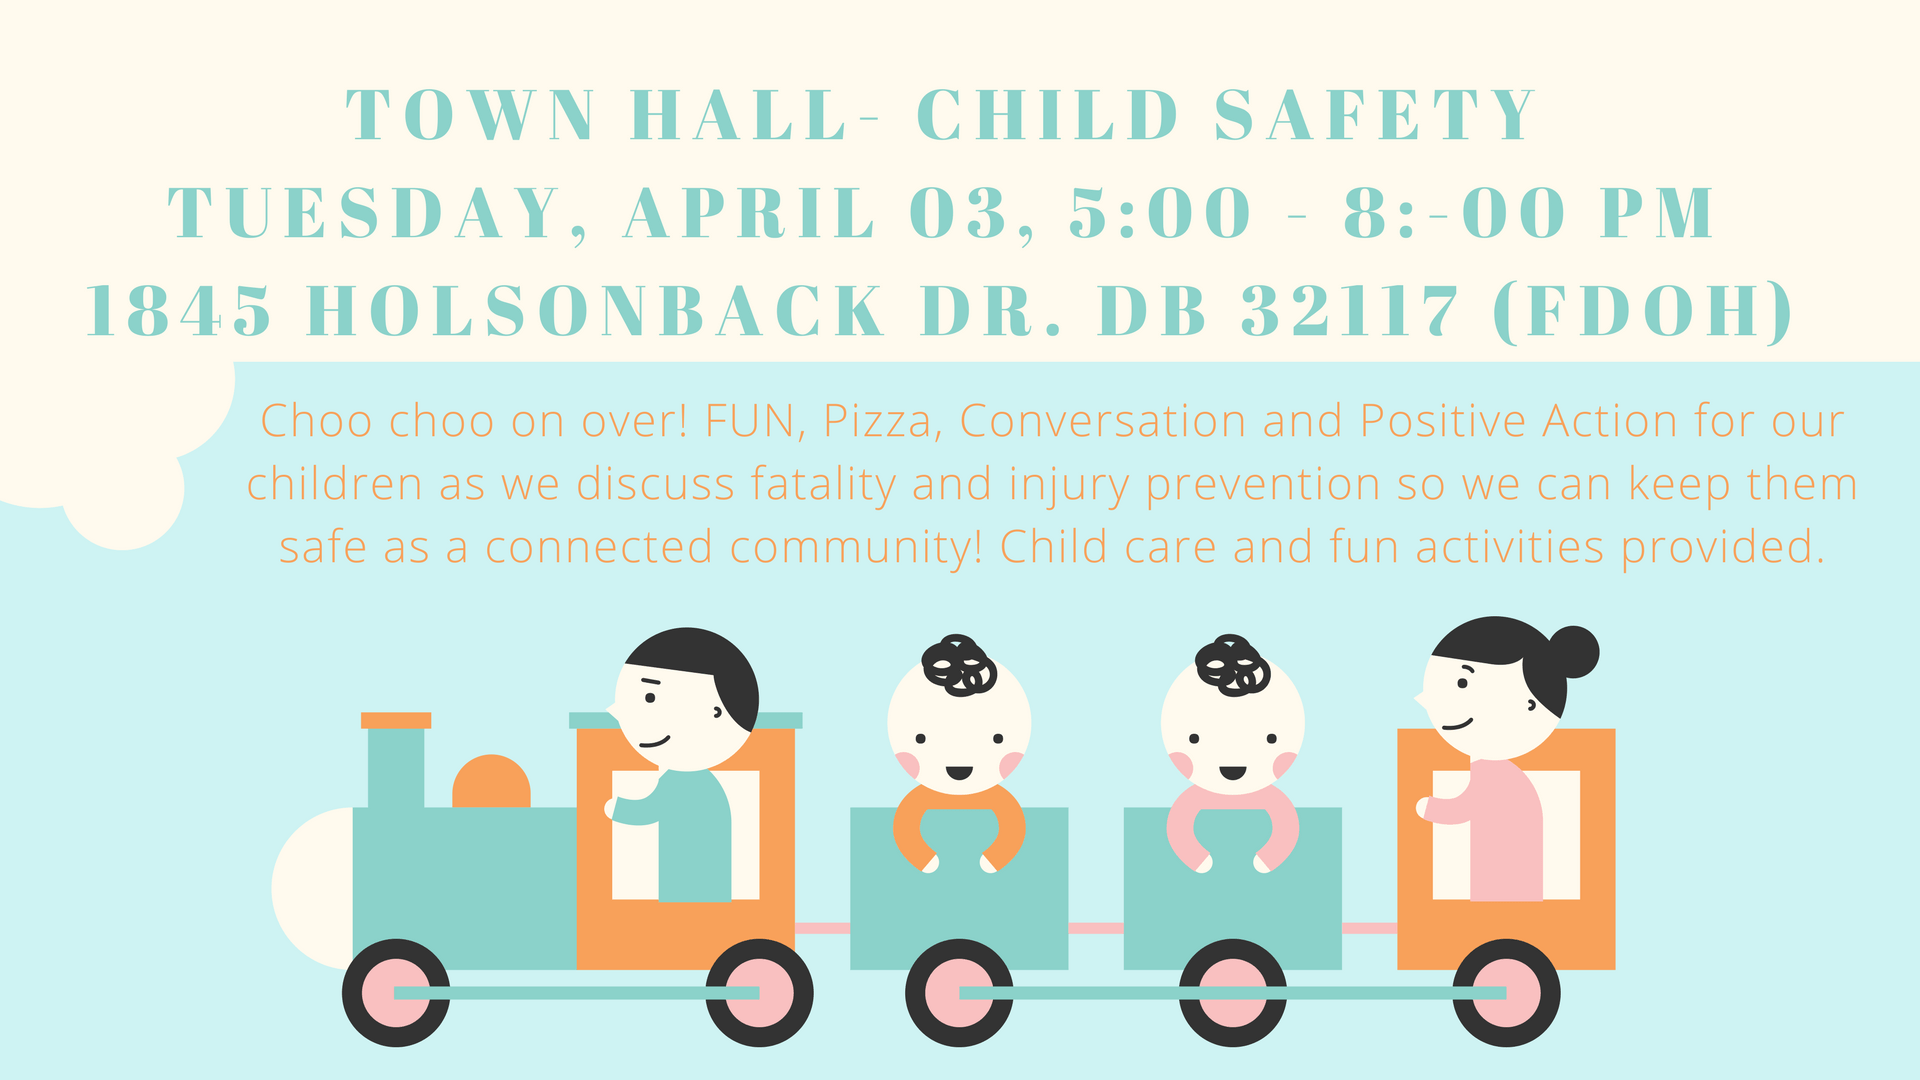 Town clipart kind community. April child safety hall